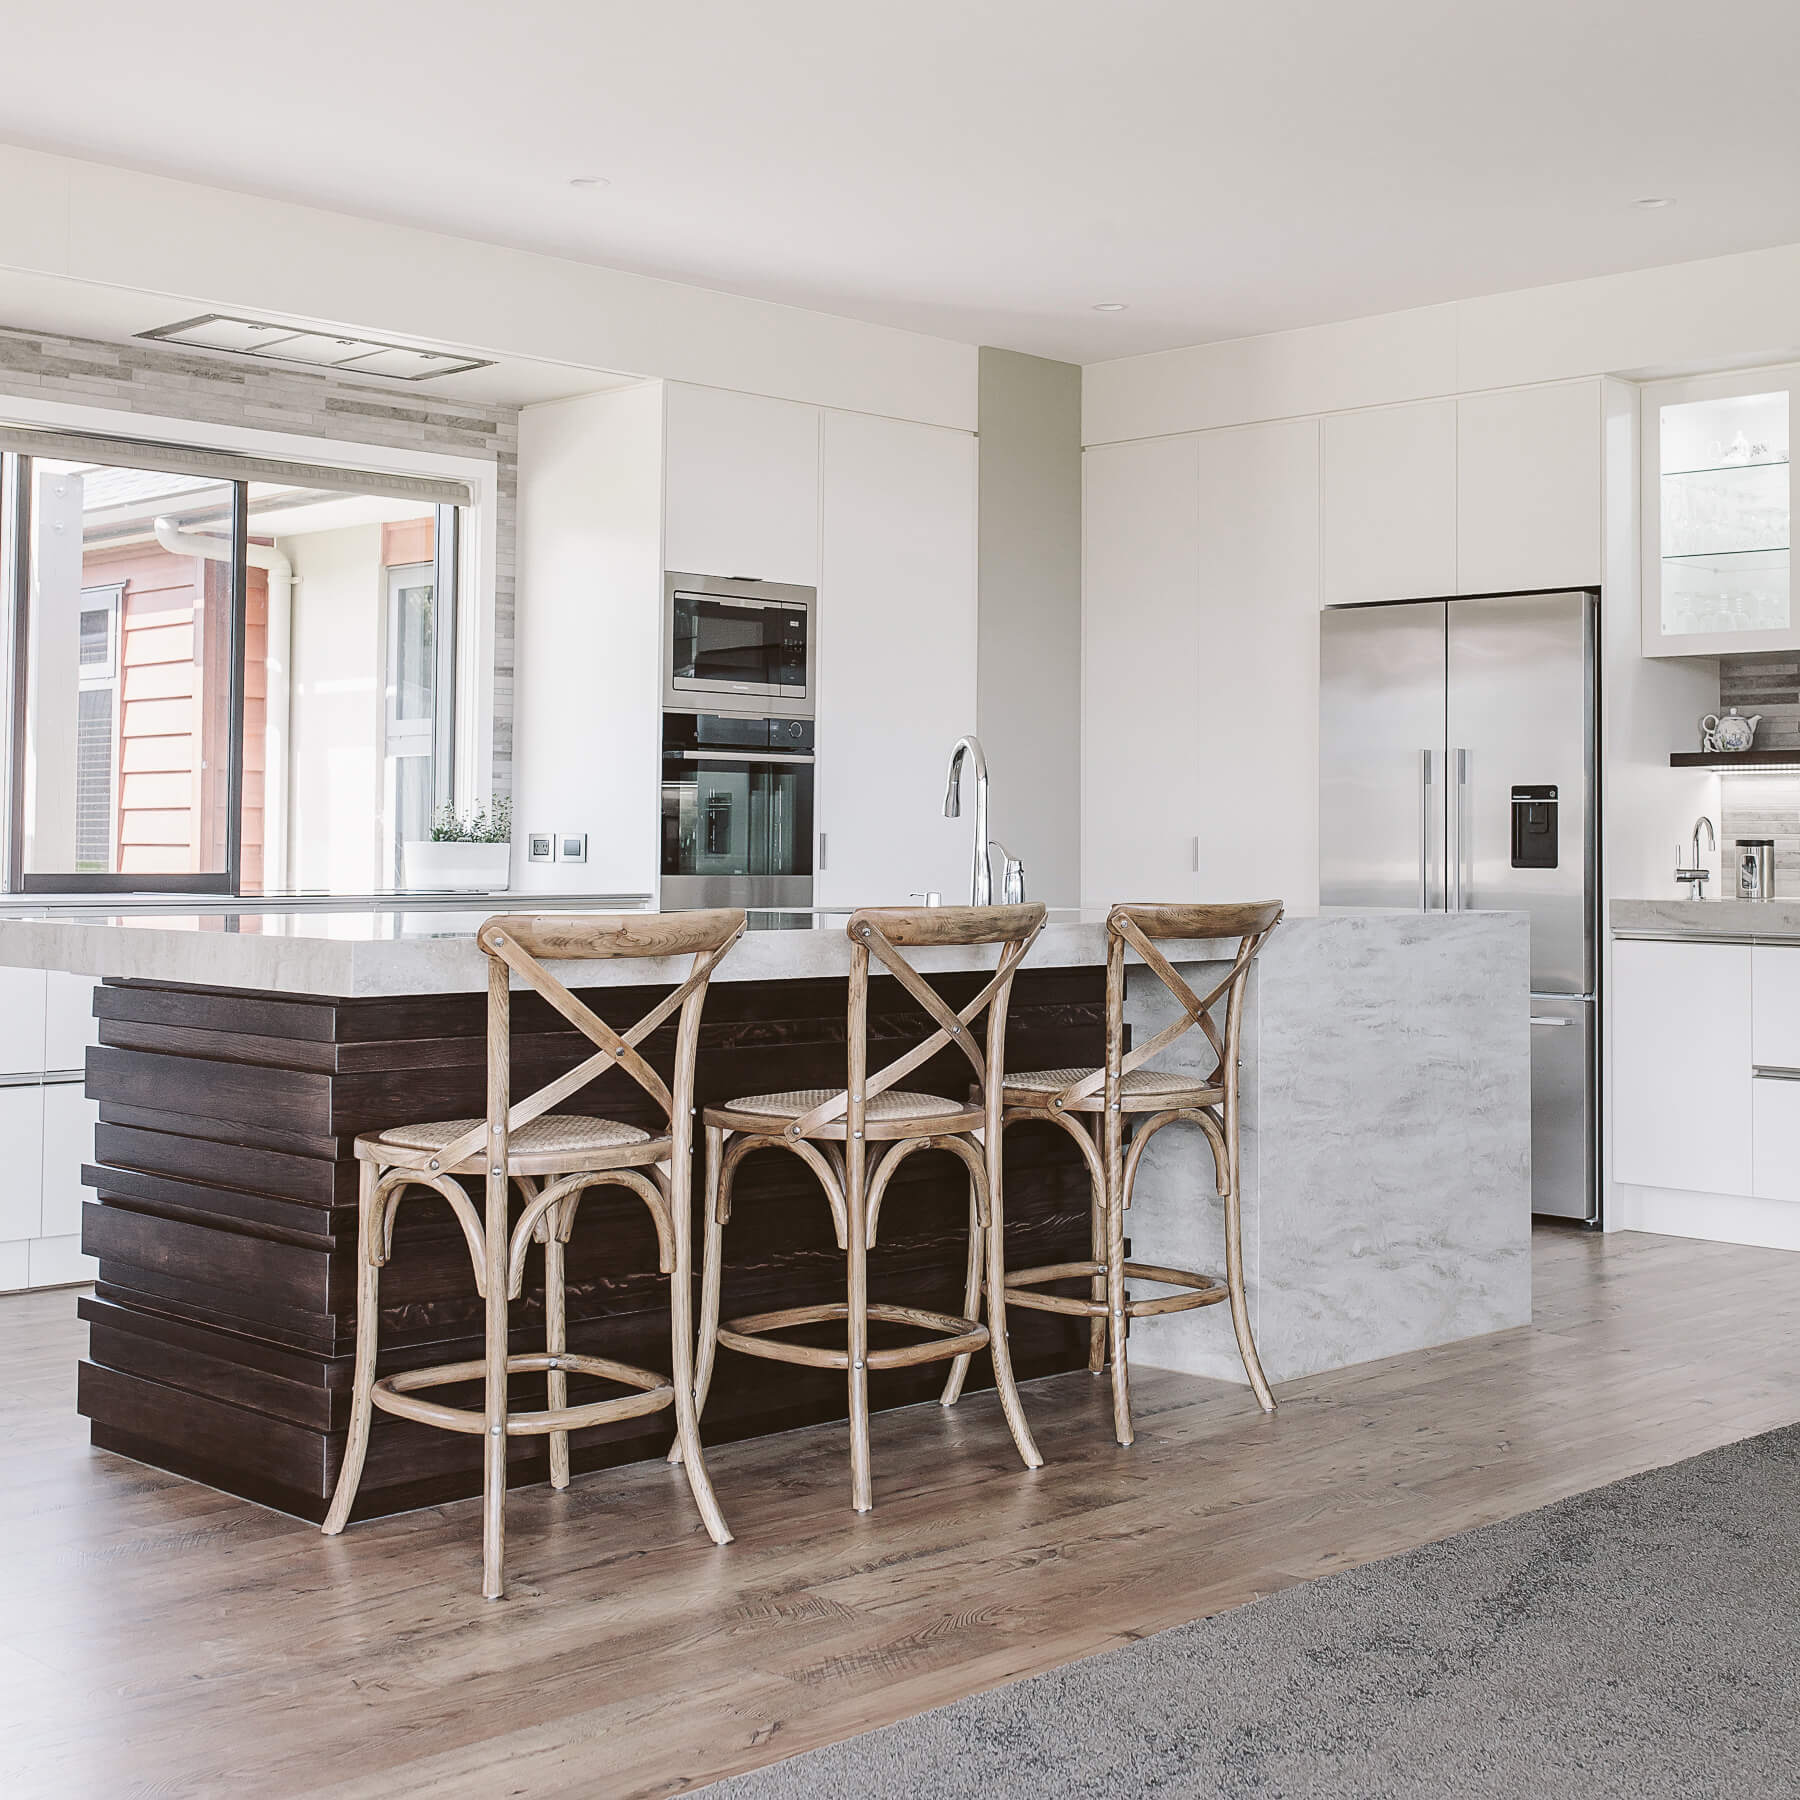 Arctic White Velvet | Rowson Kitchens in New Plymouth